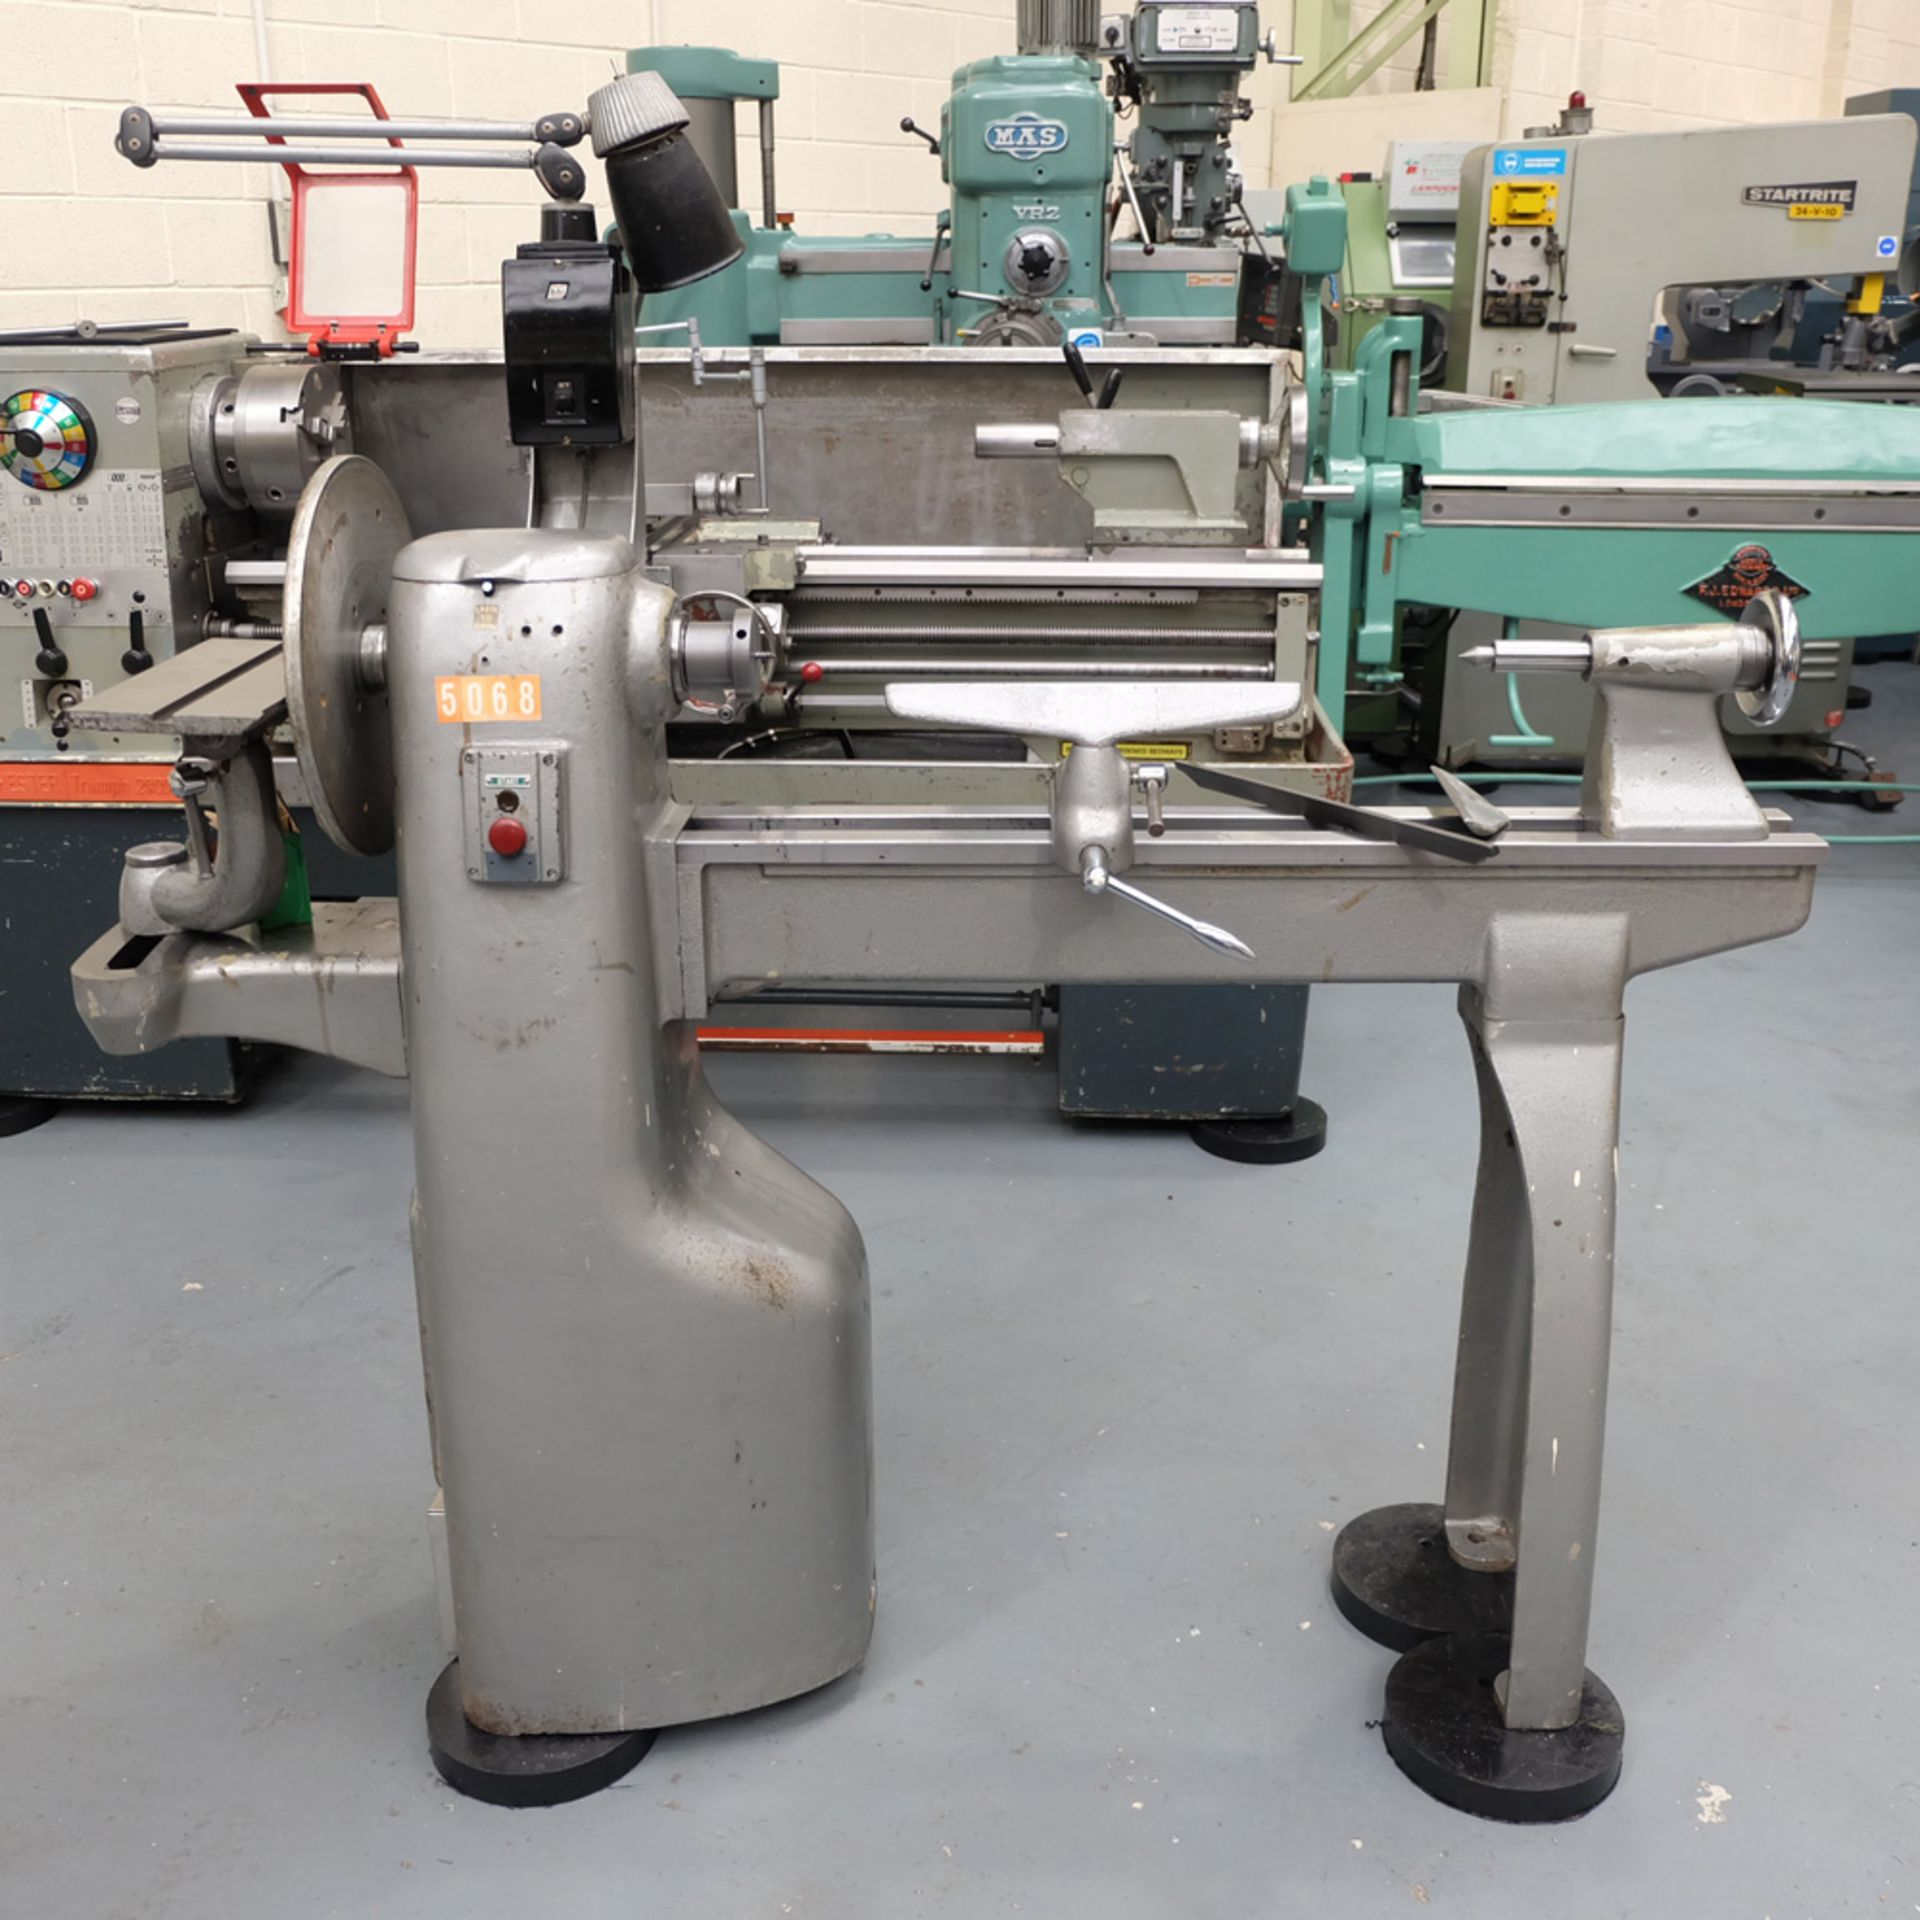 "Union Graduate Pedestal Wood Turning Lathe. Distance Between Centres 30"". Swing Over Bed 12""."